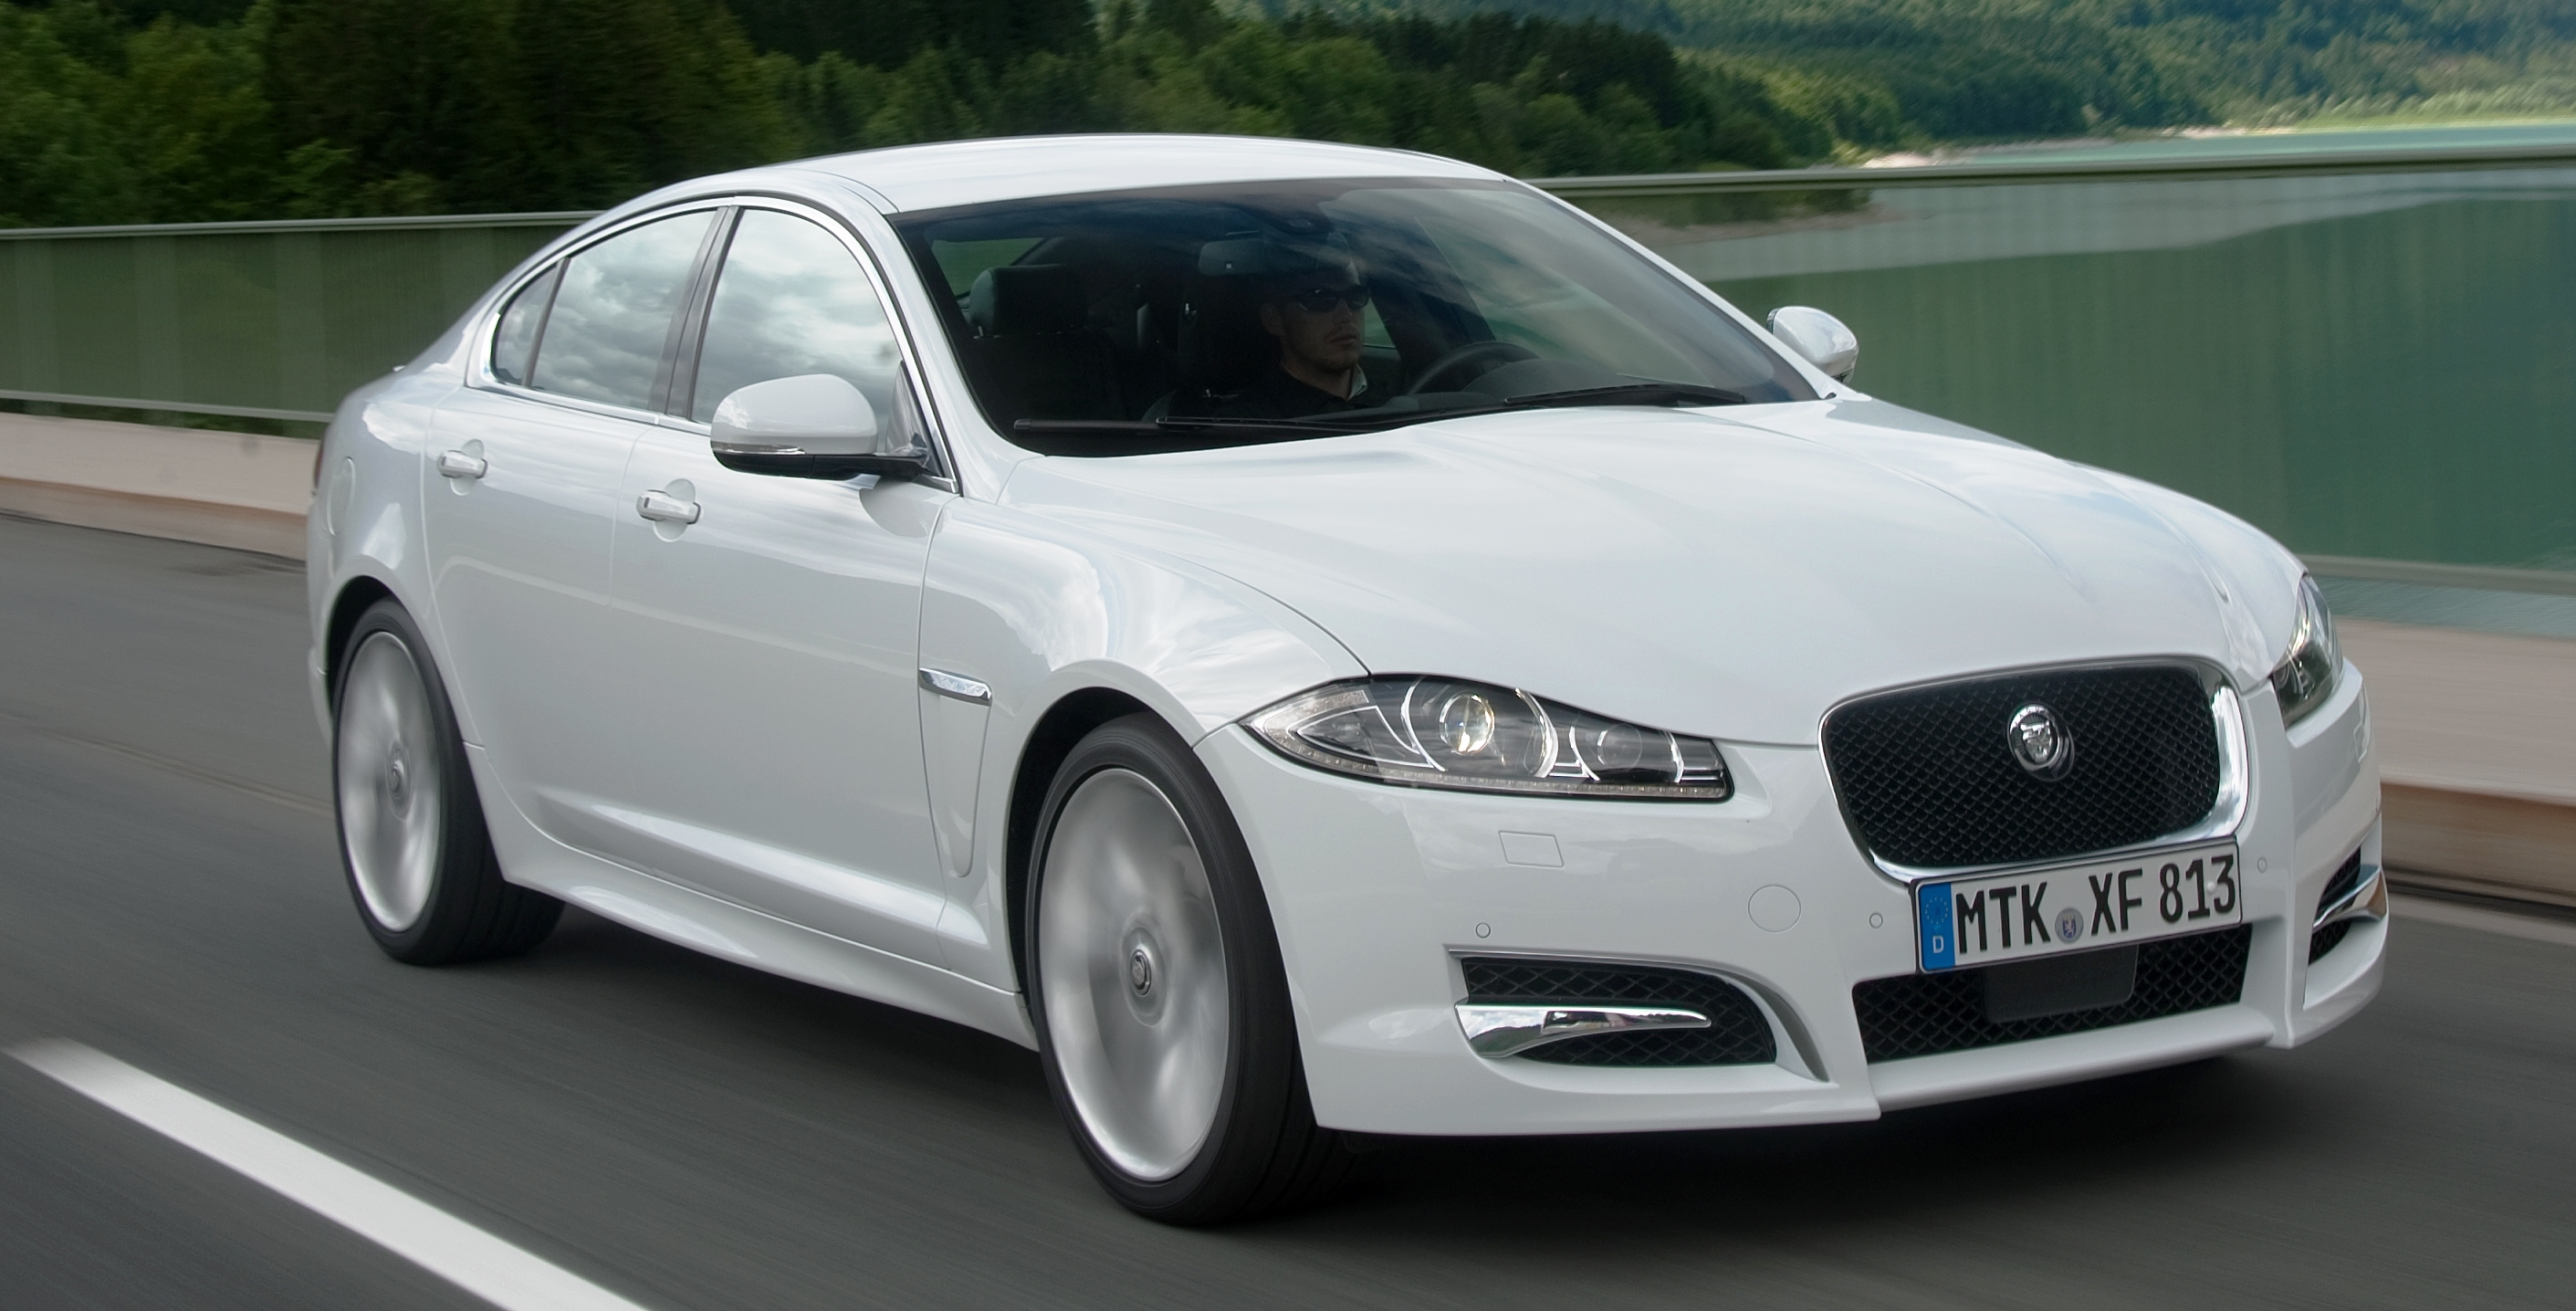 gve pre vehicles supercharged luxury r xf owned jaguar s london